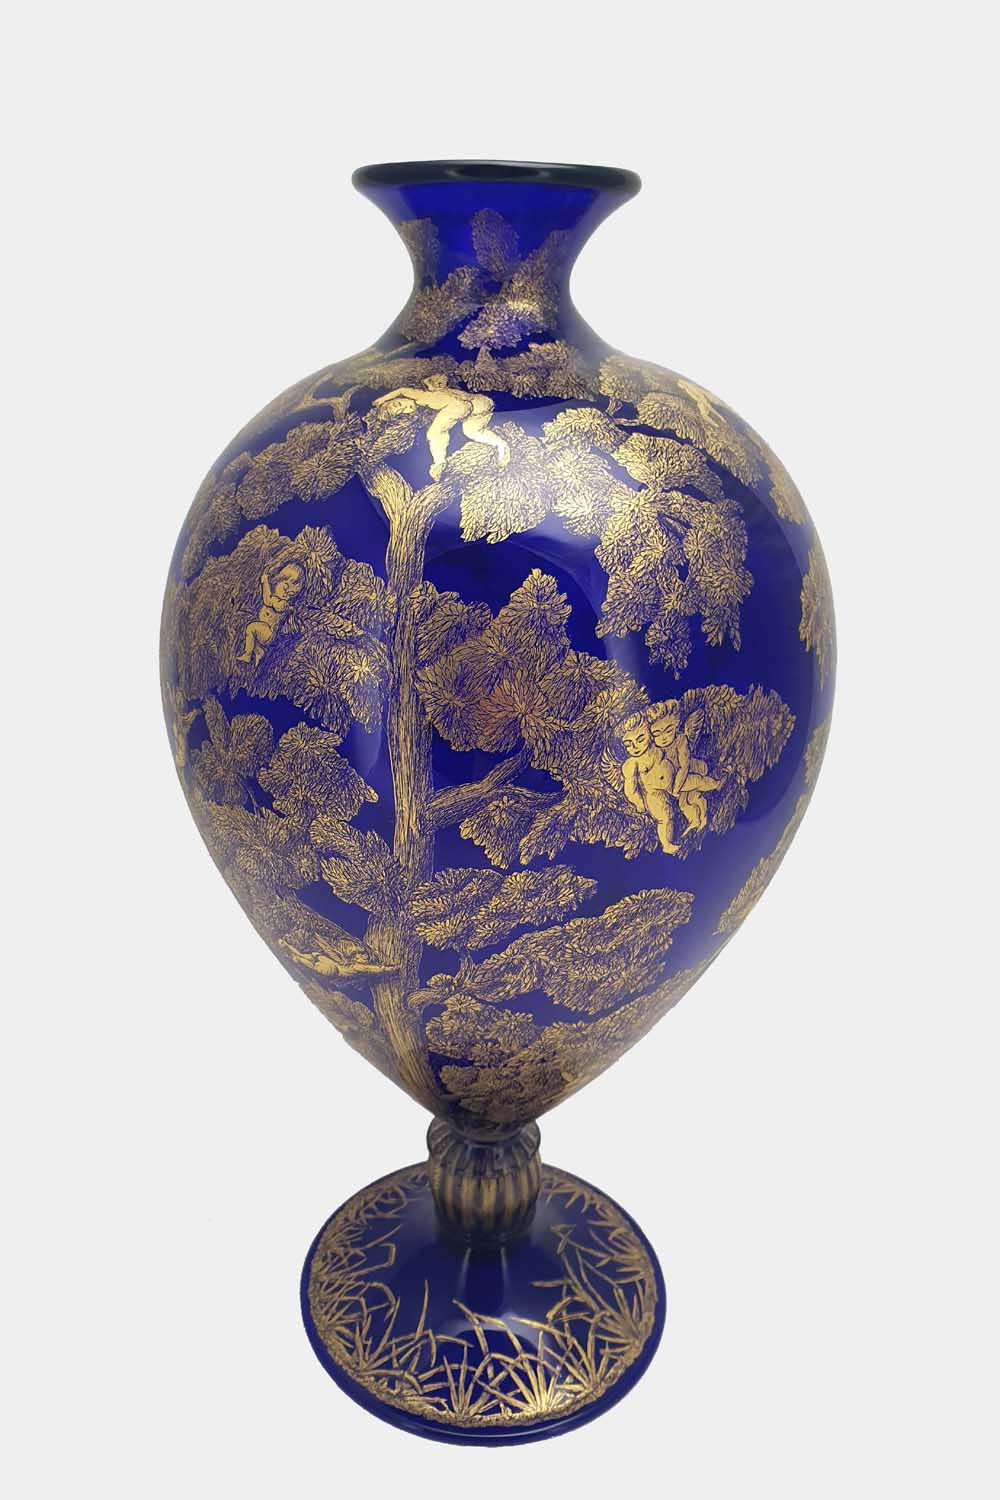 Blue veronese vase gold graffito cupids on a tree (3)